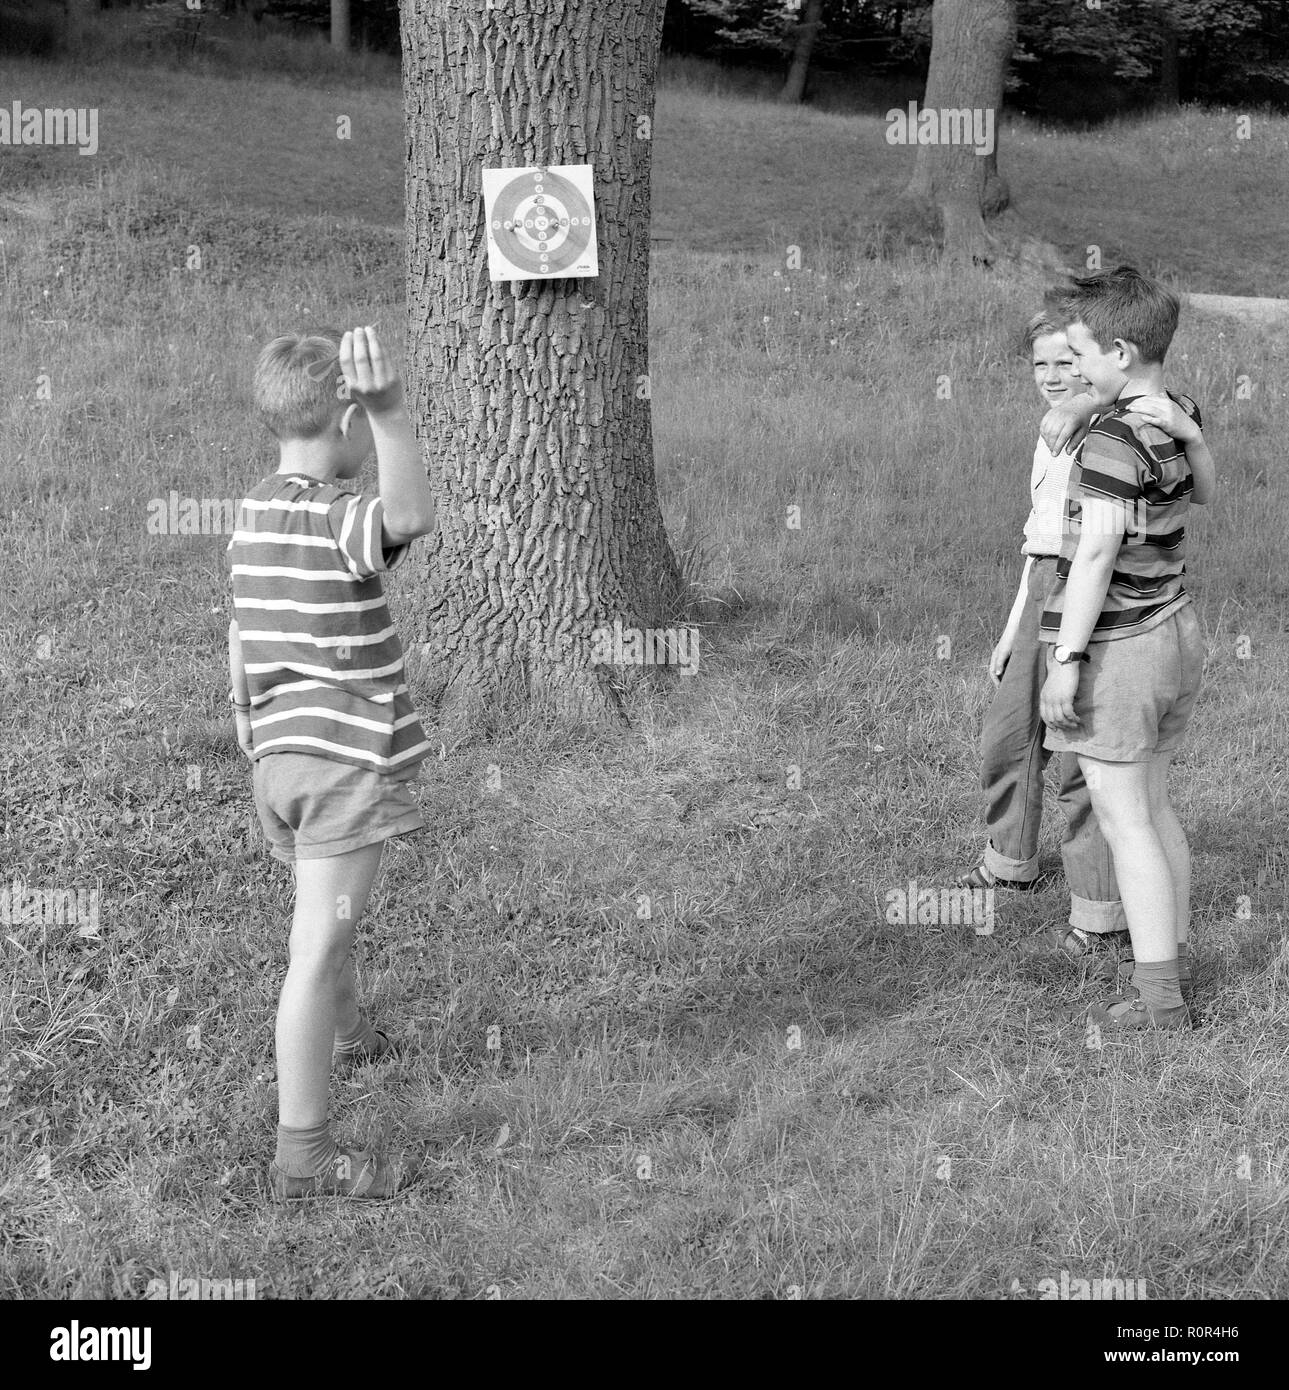 Summer activitiy in the 1950s. Three boys are playing darts outside.   Sweden 1957 Ref 3480 - Stock Image